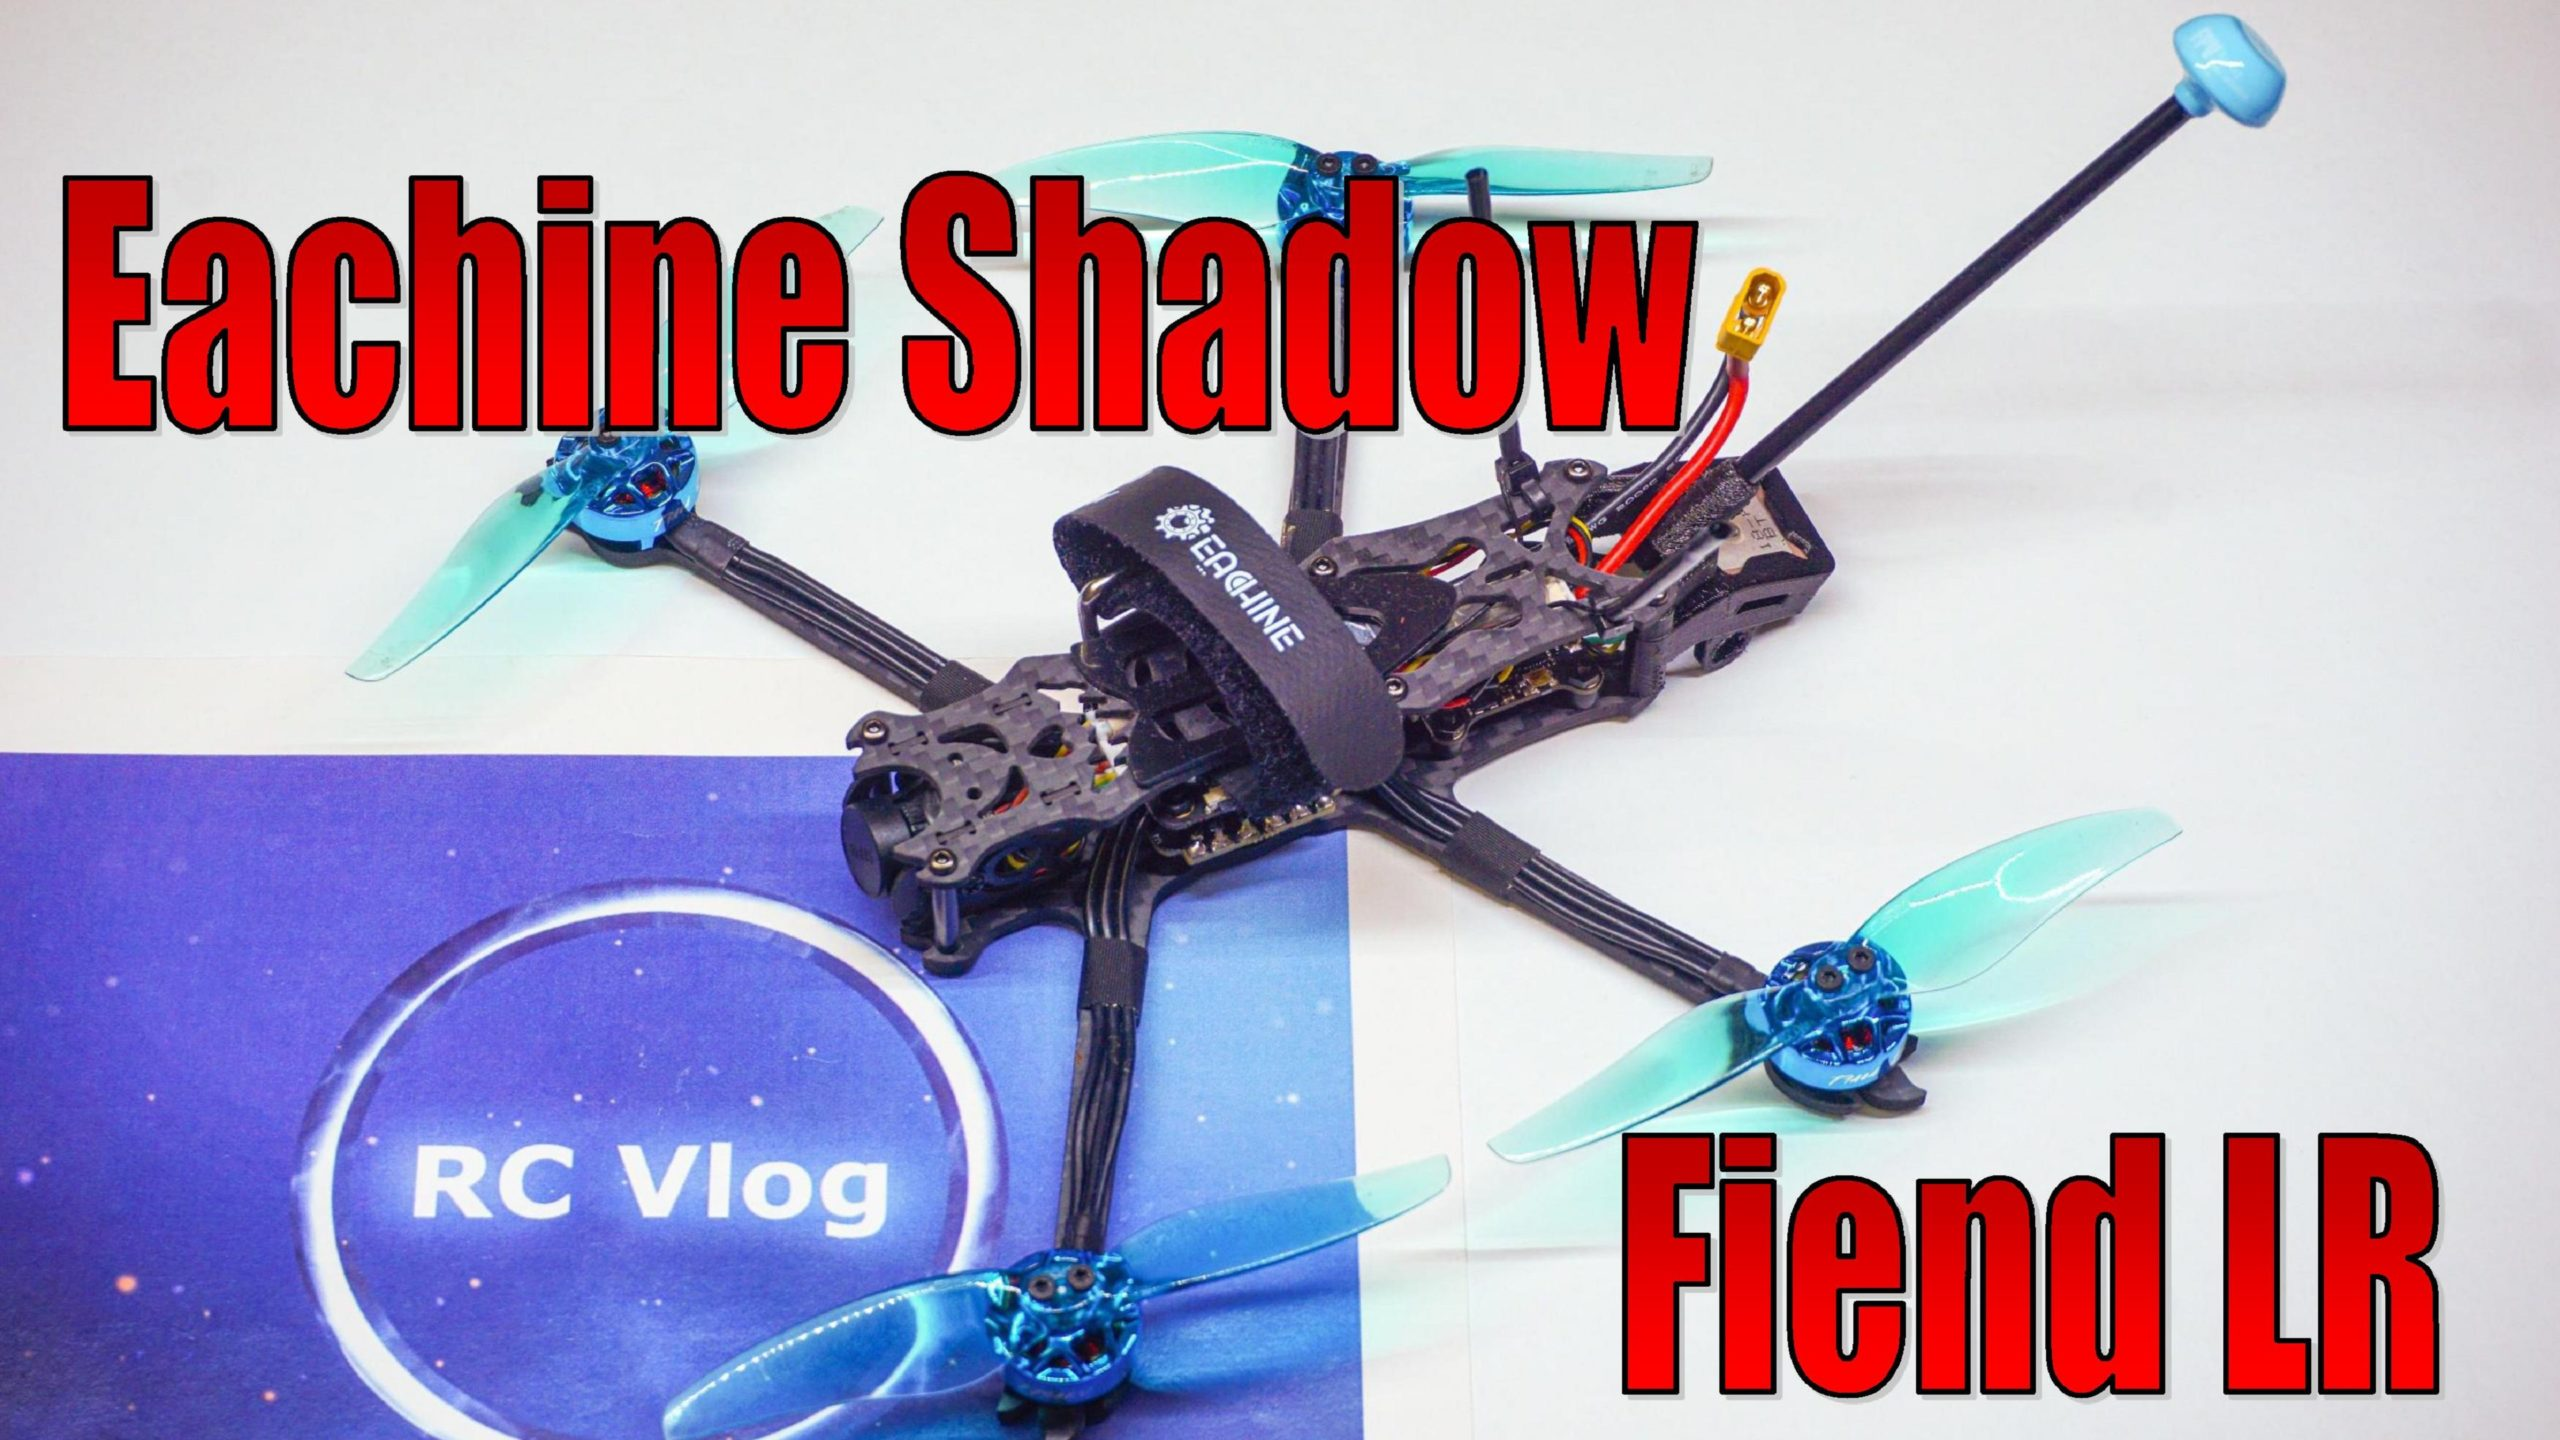 Eachine Shadow Fiend LR